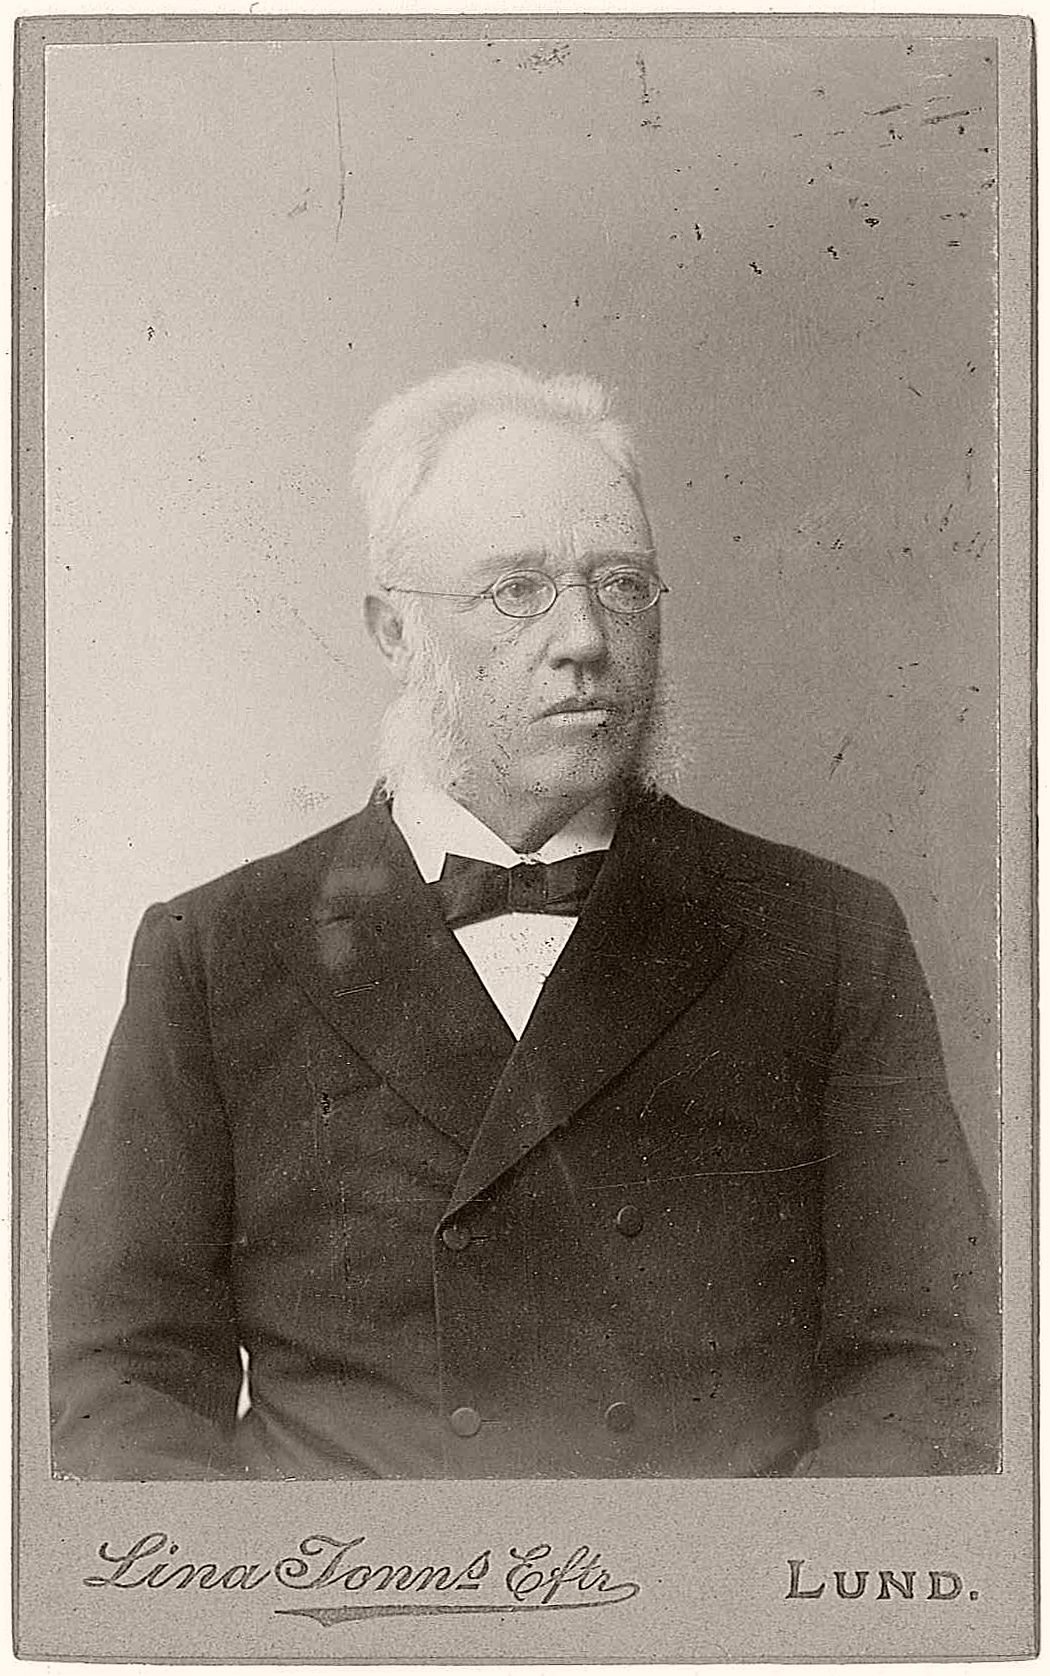 Fredrik Areschoug (1830-1908), Swedish professor of botany at Lund University.